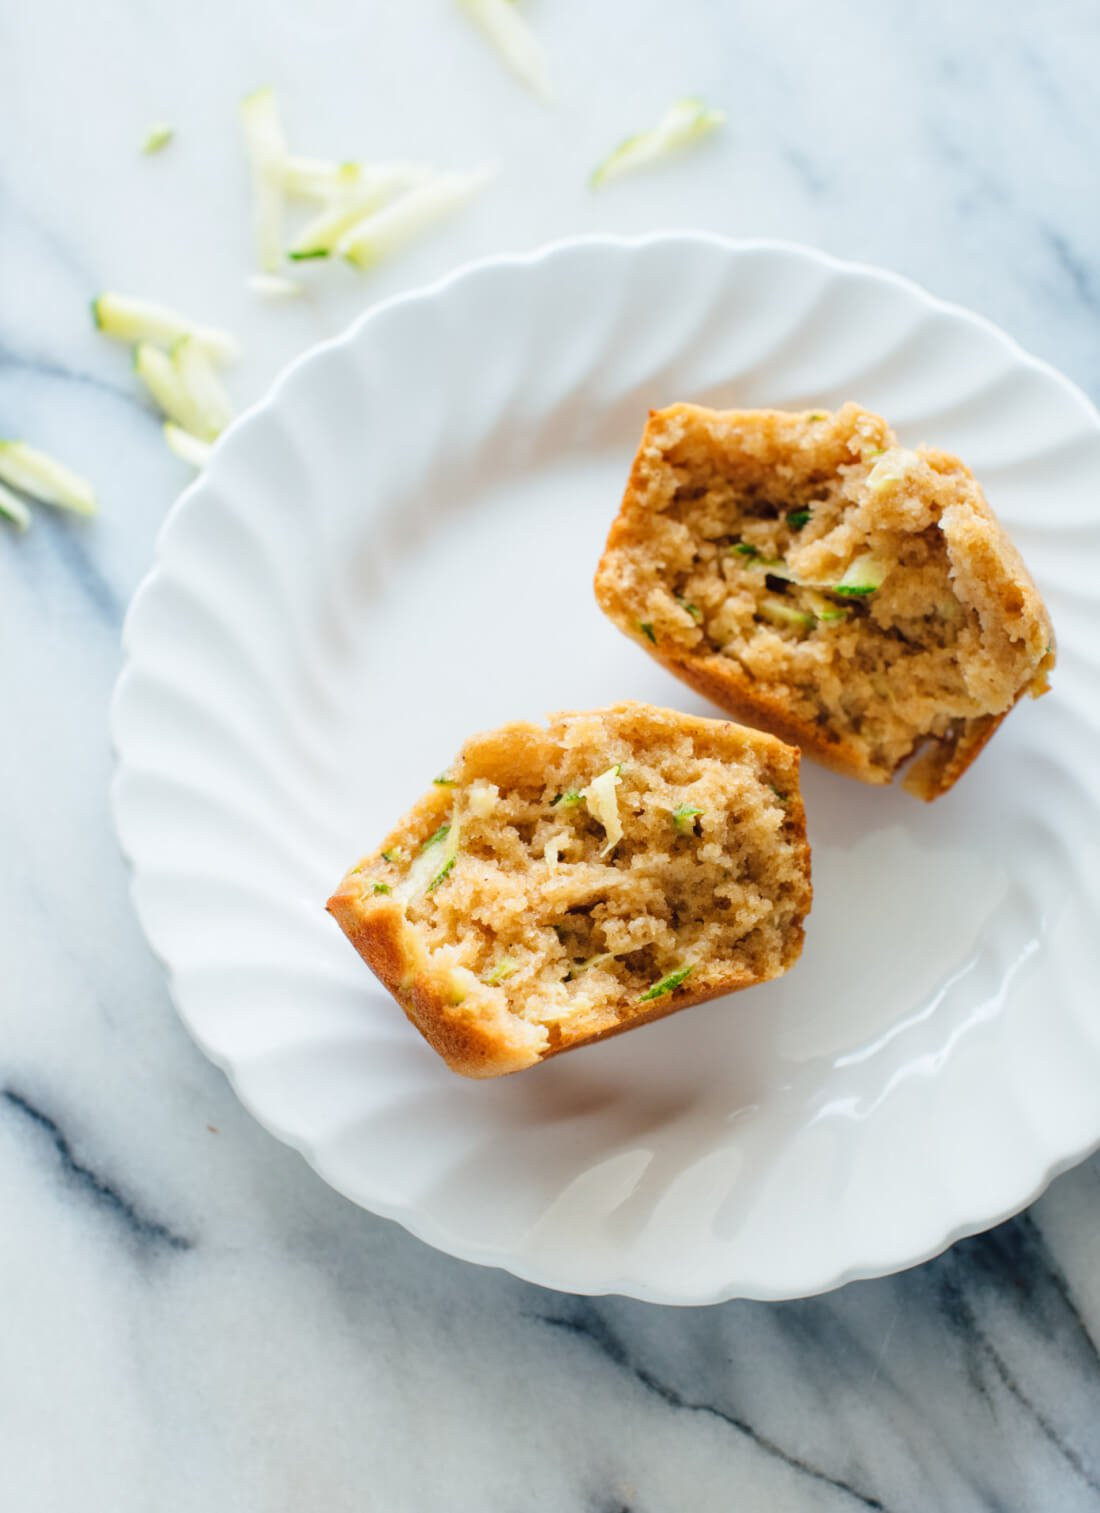 Healthy Breakfast Baked Goods  Healthy Zucchini Muffins Recipe Cookie and Kate